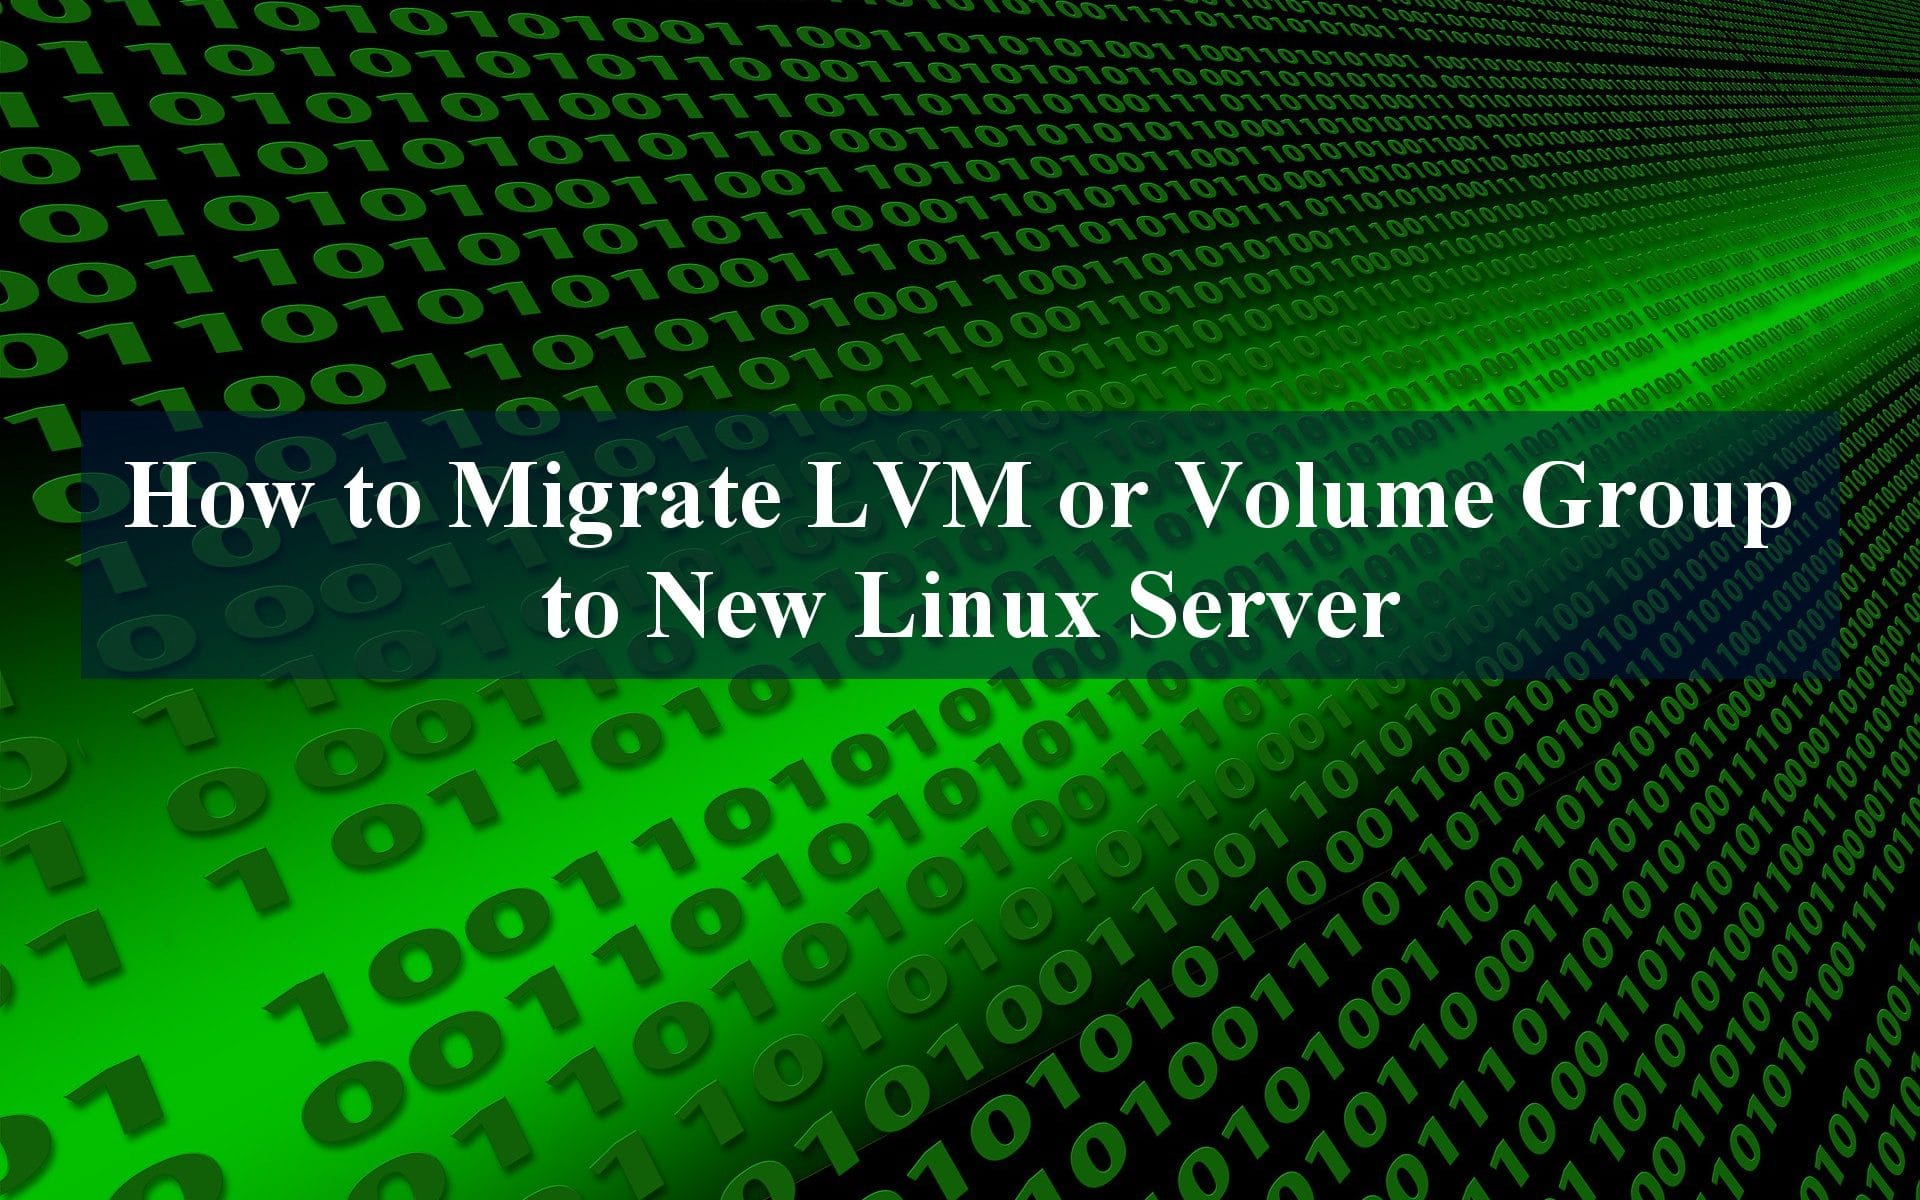 How to Migrate LVM or Volume Group to New Linux Server